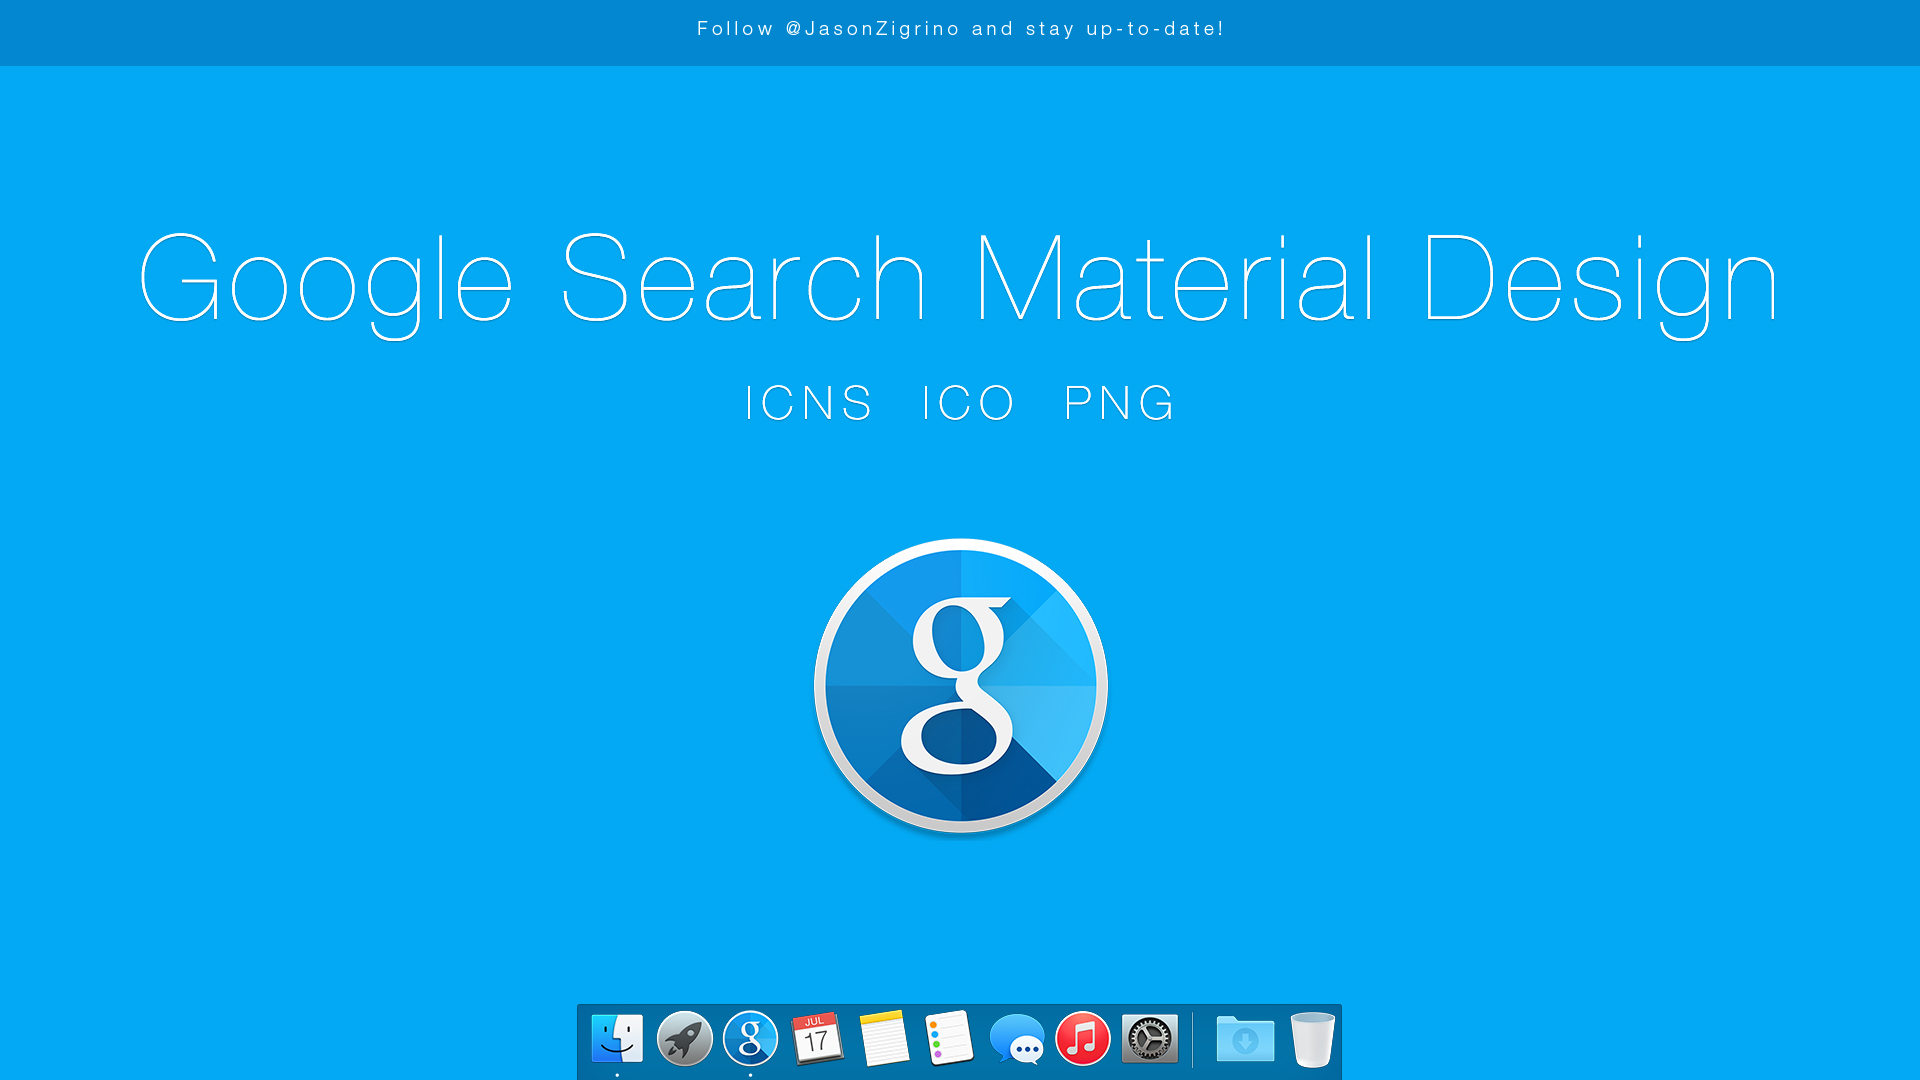 Google search material design by jasonzigrino on deviantart for Architect search